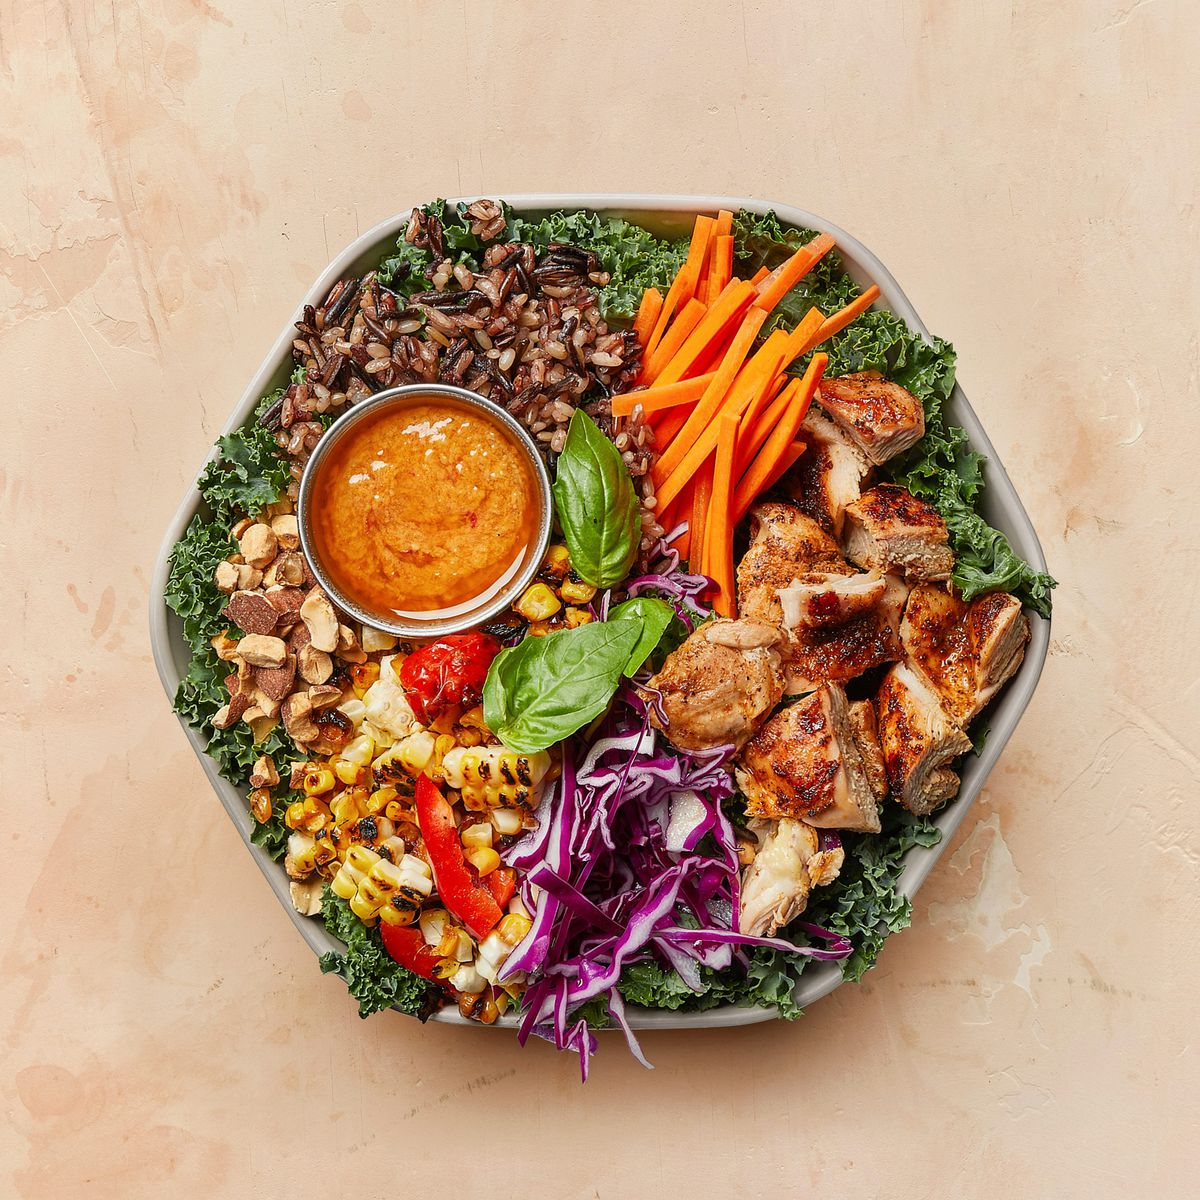 Hexagon tin bowl containing a bed of kale green with a colorful variety of nuts, grains, purple cabbage, grilled chicken, julienned carrots, and corn with a sprig of basil leaves